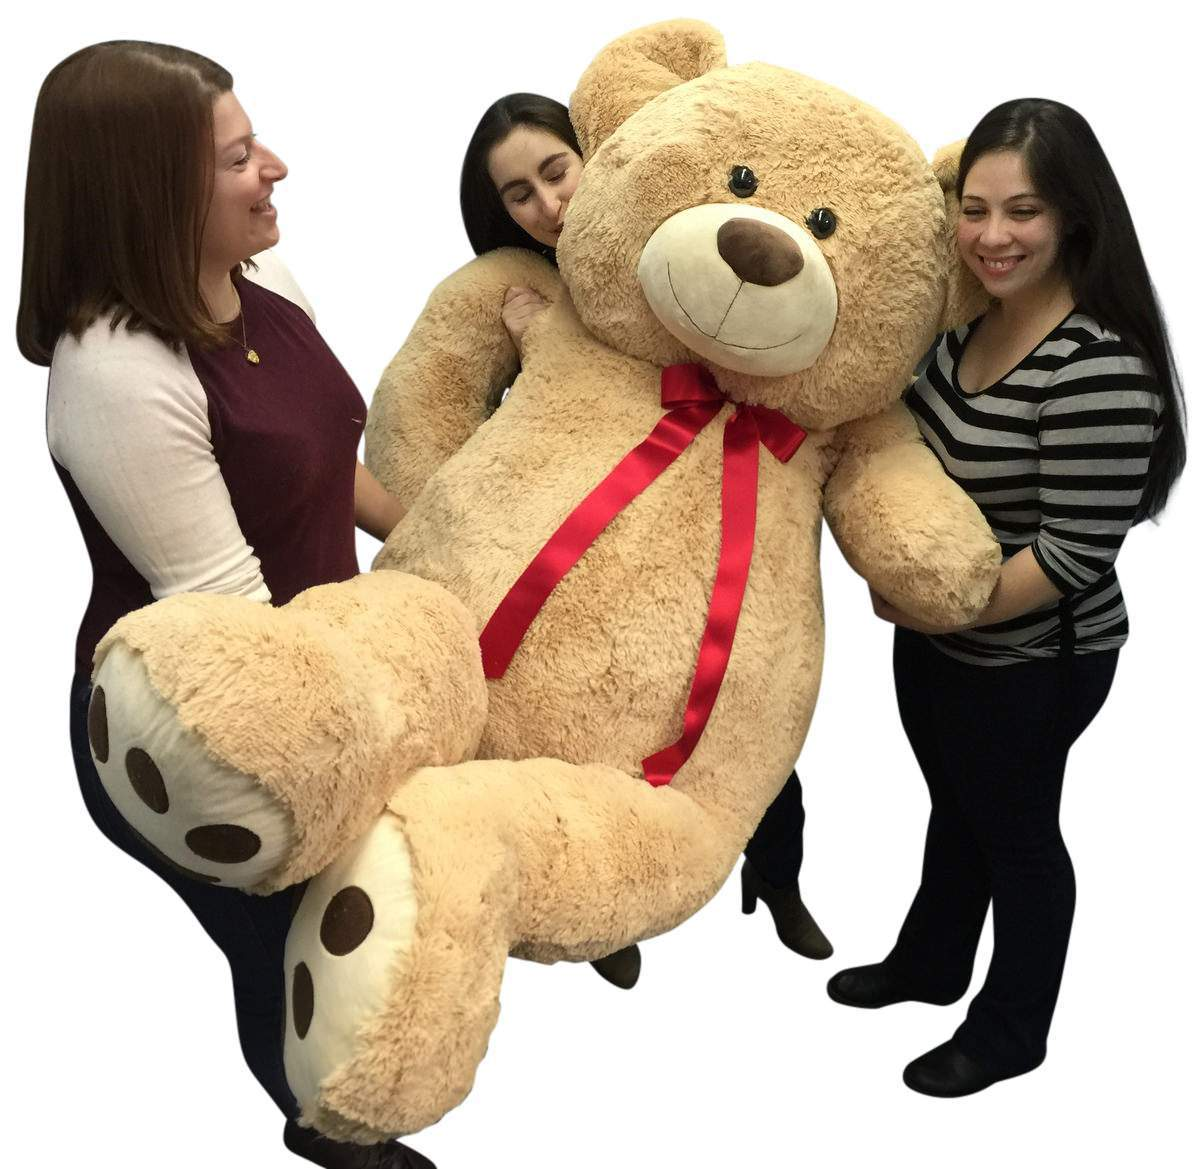 Big Plush Giant 6 Ft Teddy Bear 72 Inch Tan Soft Oversized Teddybear Weighs 22 Pounds